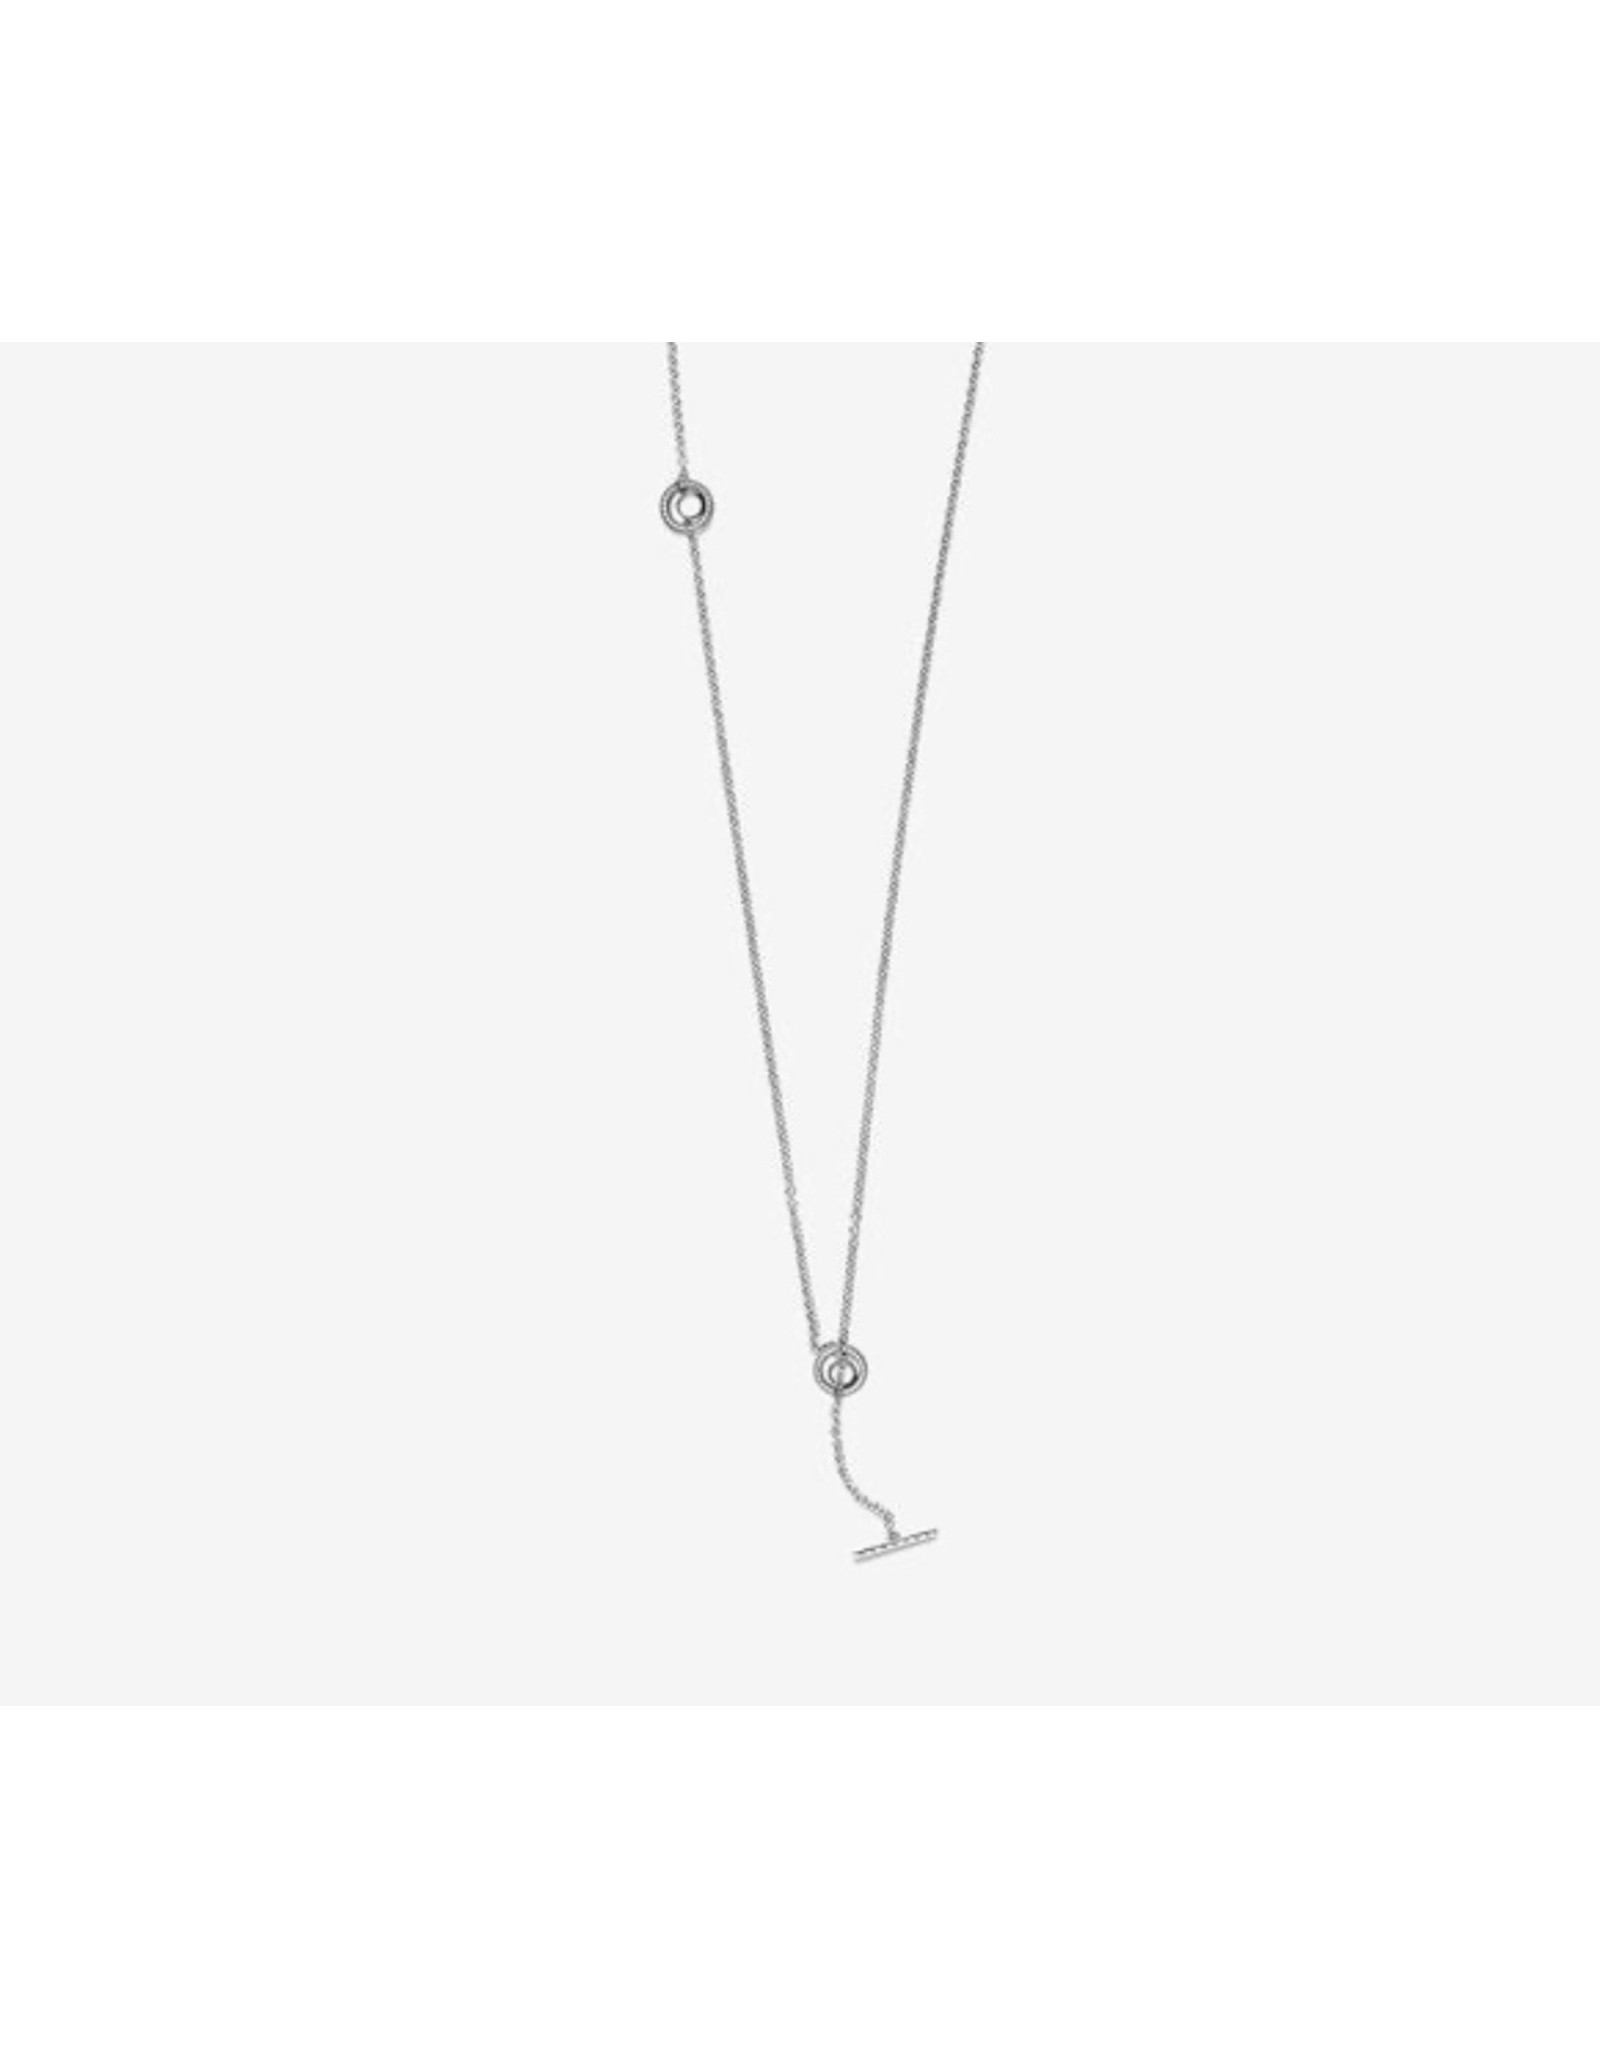 Pandora Pandora Signature Necklace 399050C01,Statement, Sterling Silver/80 cm